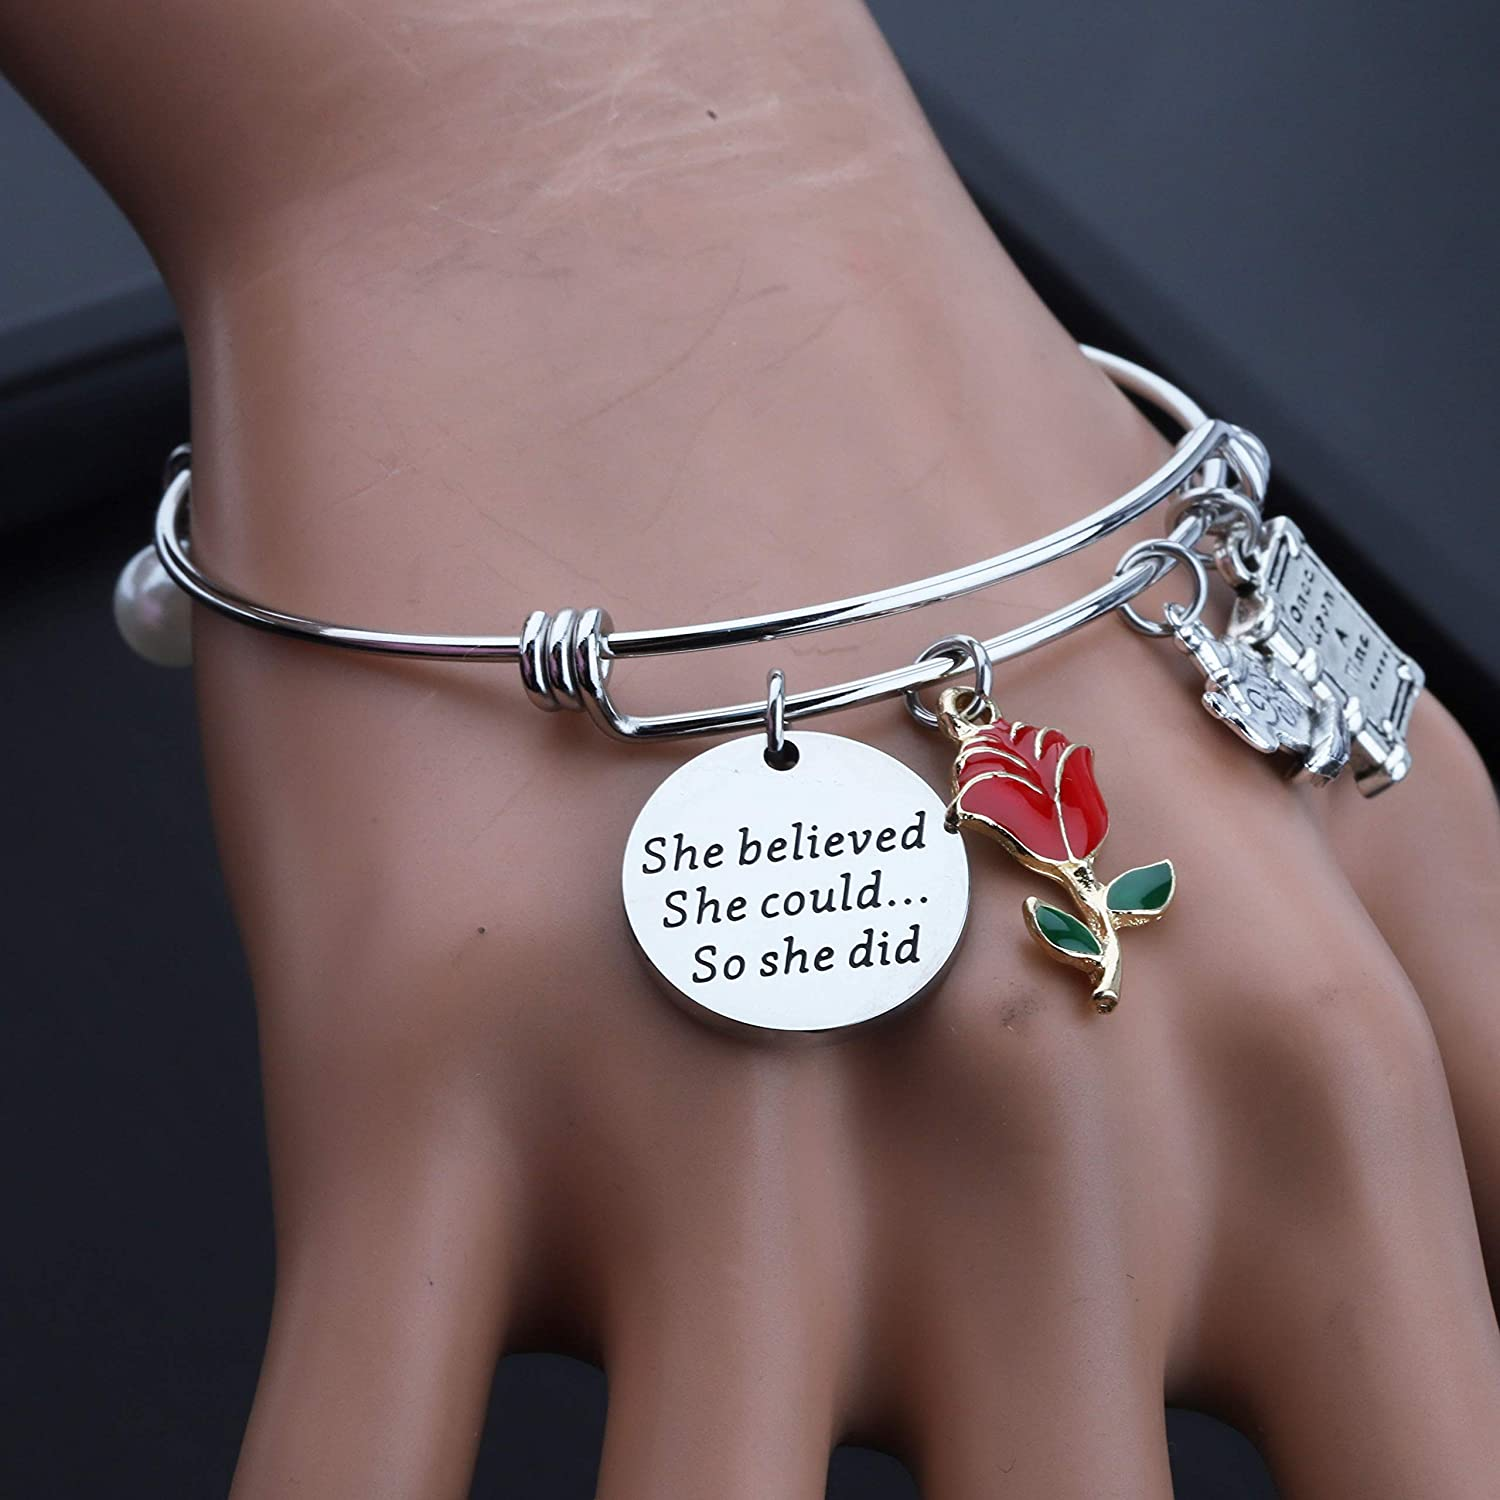 Beauty and The Beast Gift Belle Bracelet Princess Bracelet She Believed She Could So She Did Beauty and The Beast Inspired Jewelry